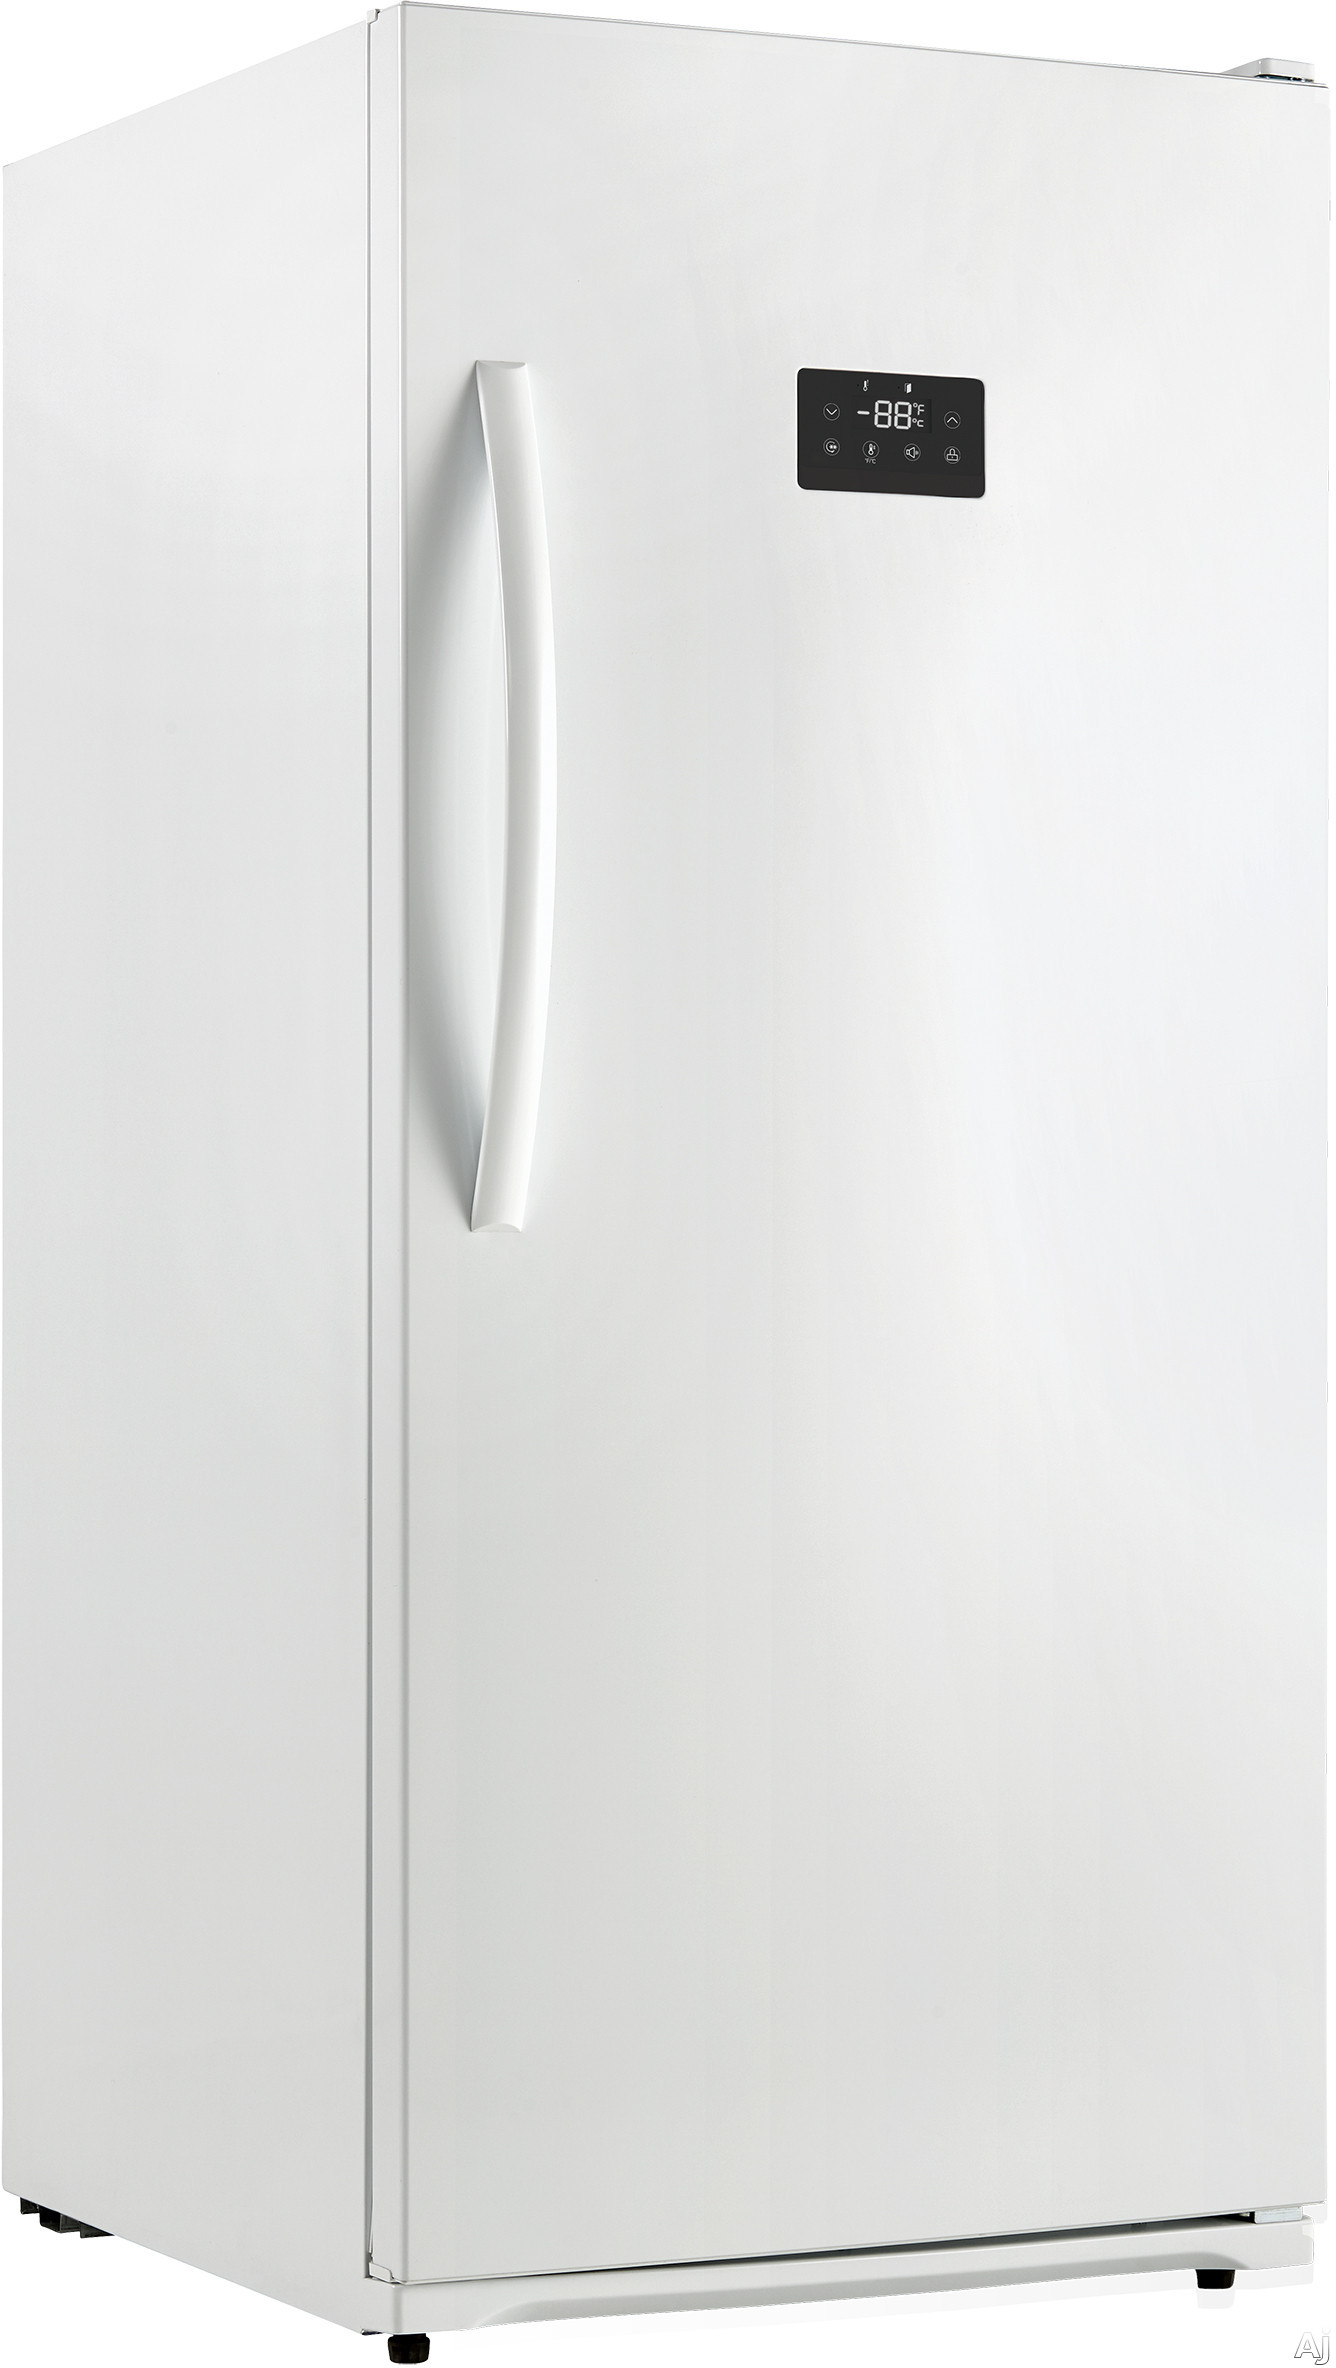 Danby Designer Series DUF138E1WDD 28 Inch Upright Freezer with 13.8 cu. ft. Capacity, Frost Free Design, 4 Wire Shelves, Wire Basket, 5 Door Shelves, Digital Thermostat, Interior Lighting, Quick Freeze Option, Alert Alarms and ENERGY STAR Rated